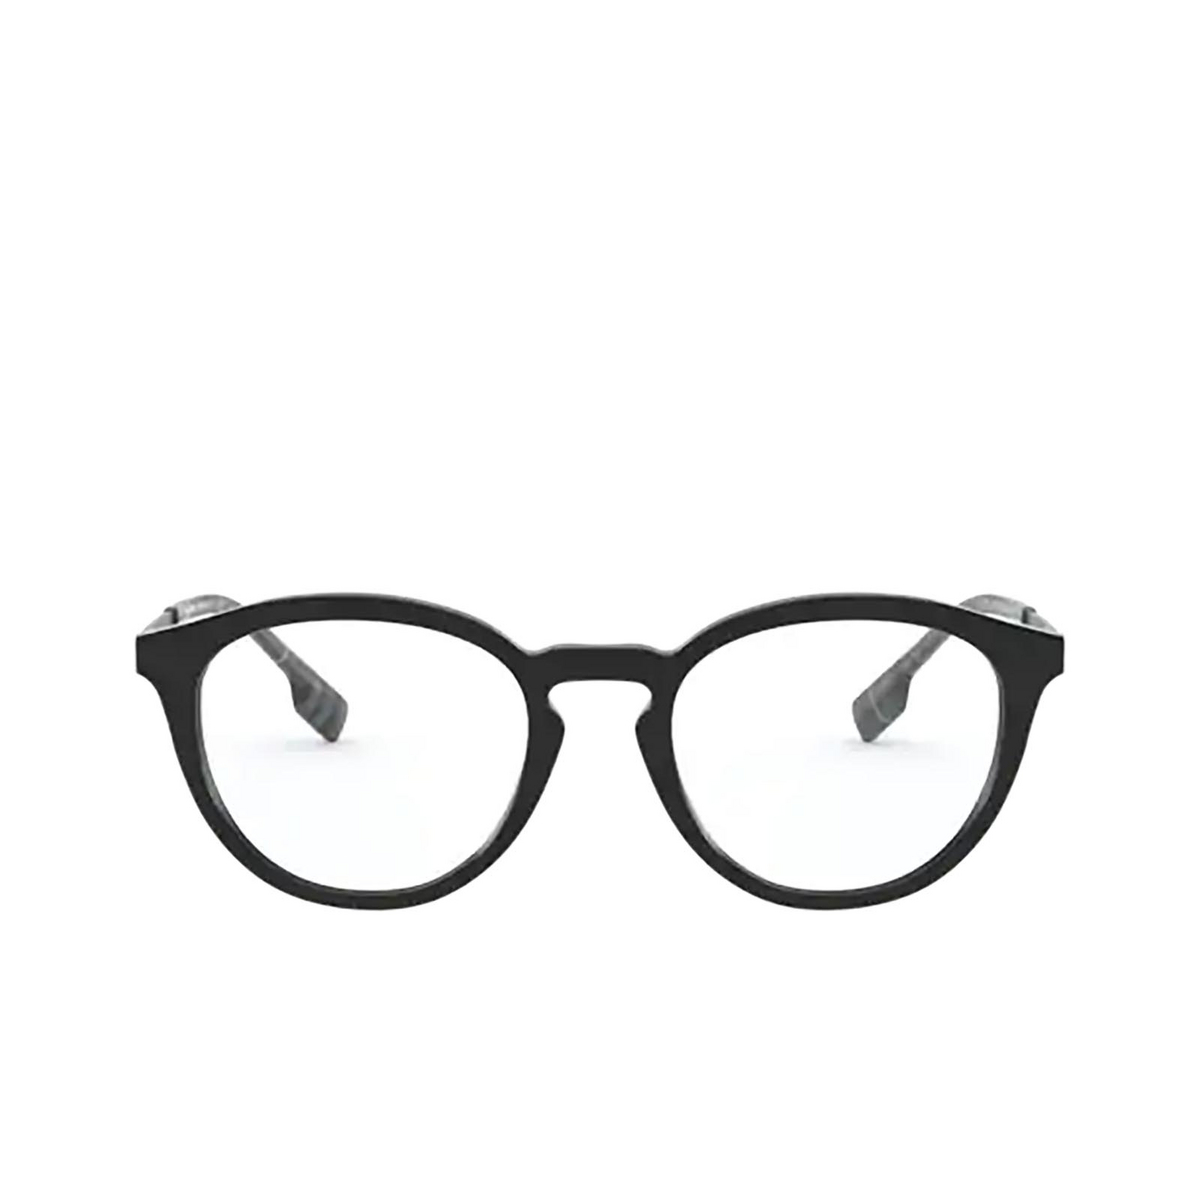 Burberry® Round Eyeglasses: Keats BE2321 color Black 3001 - front view.